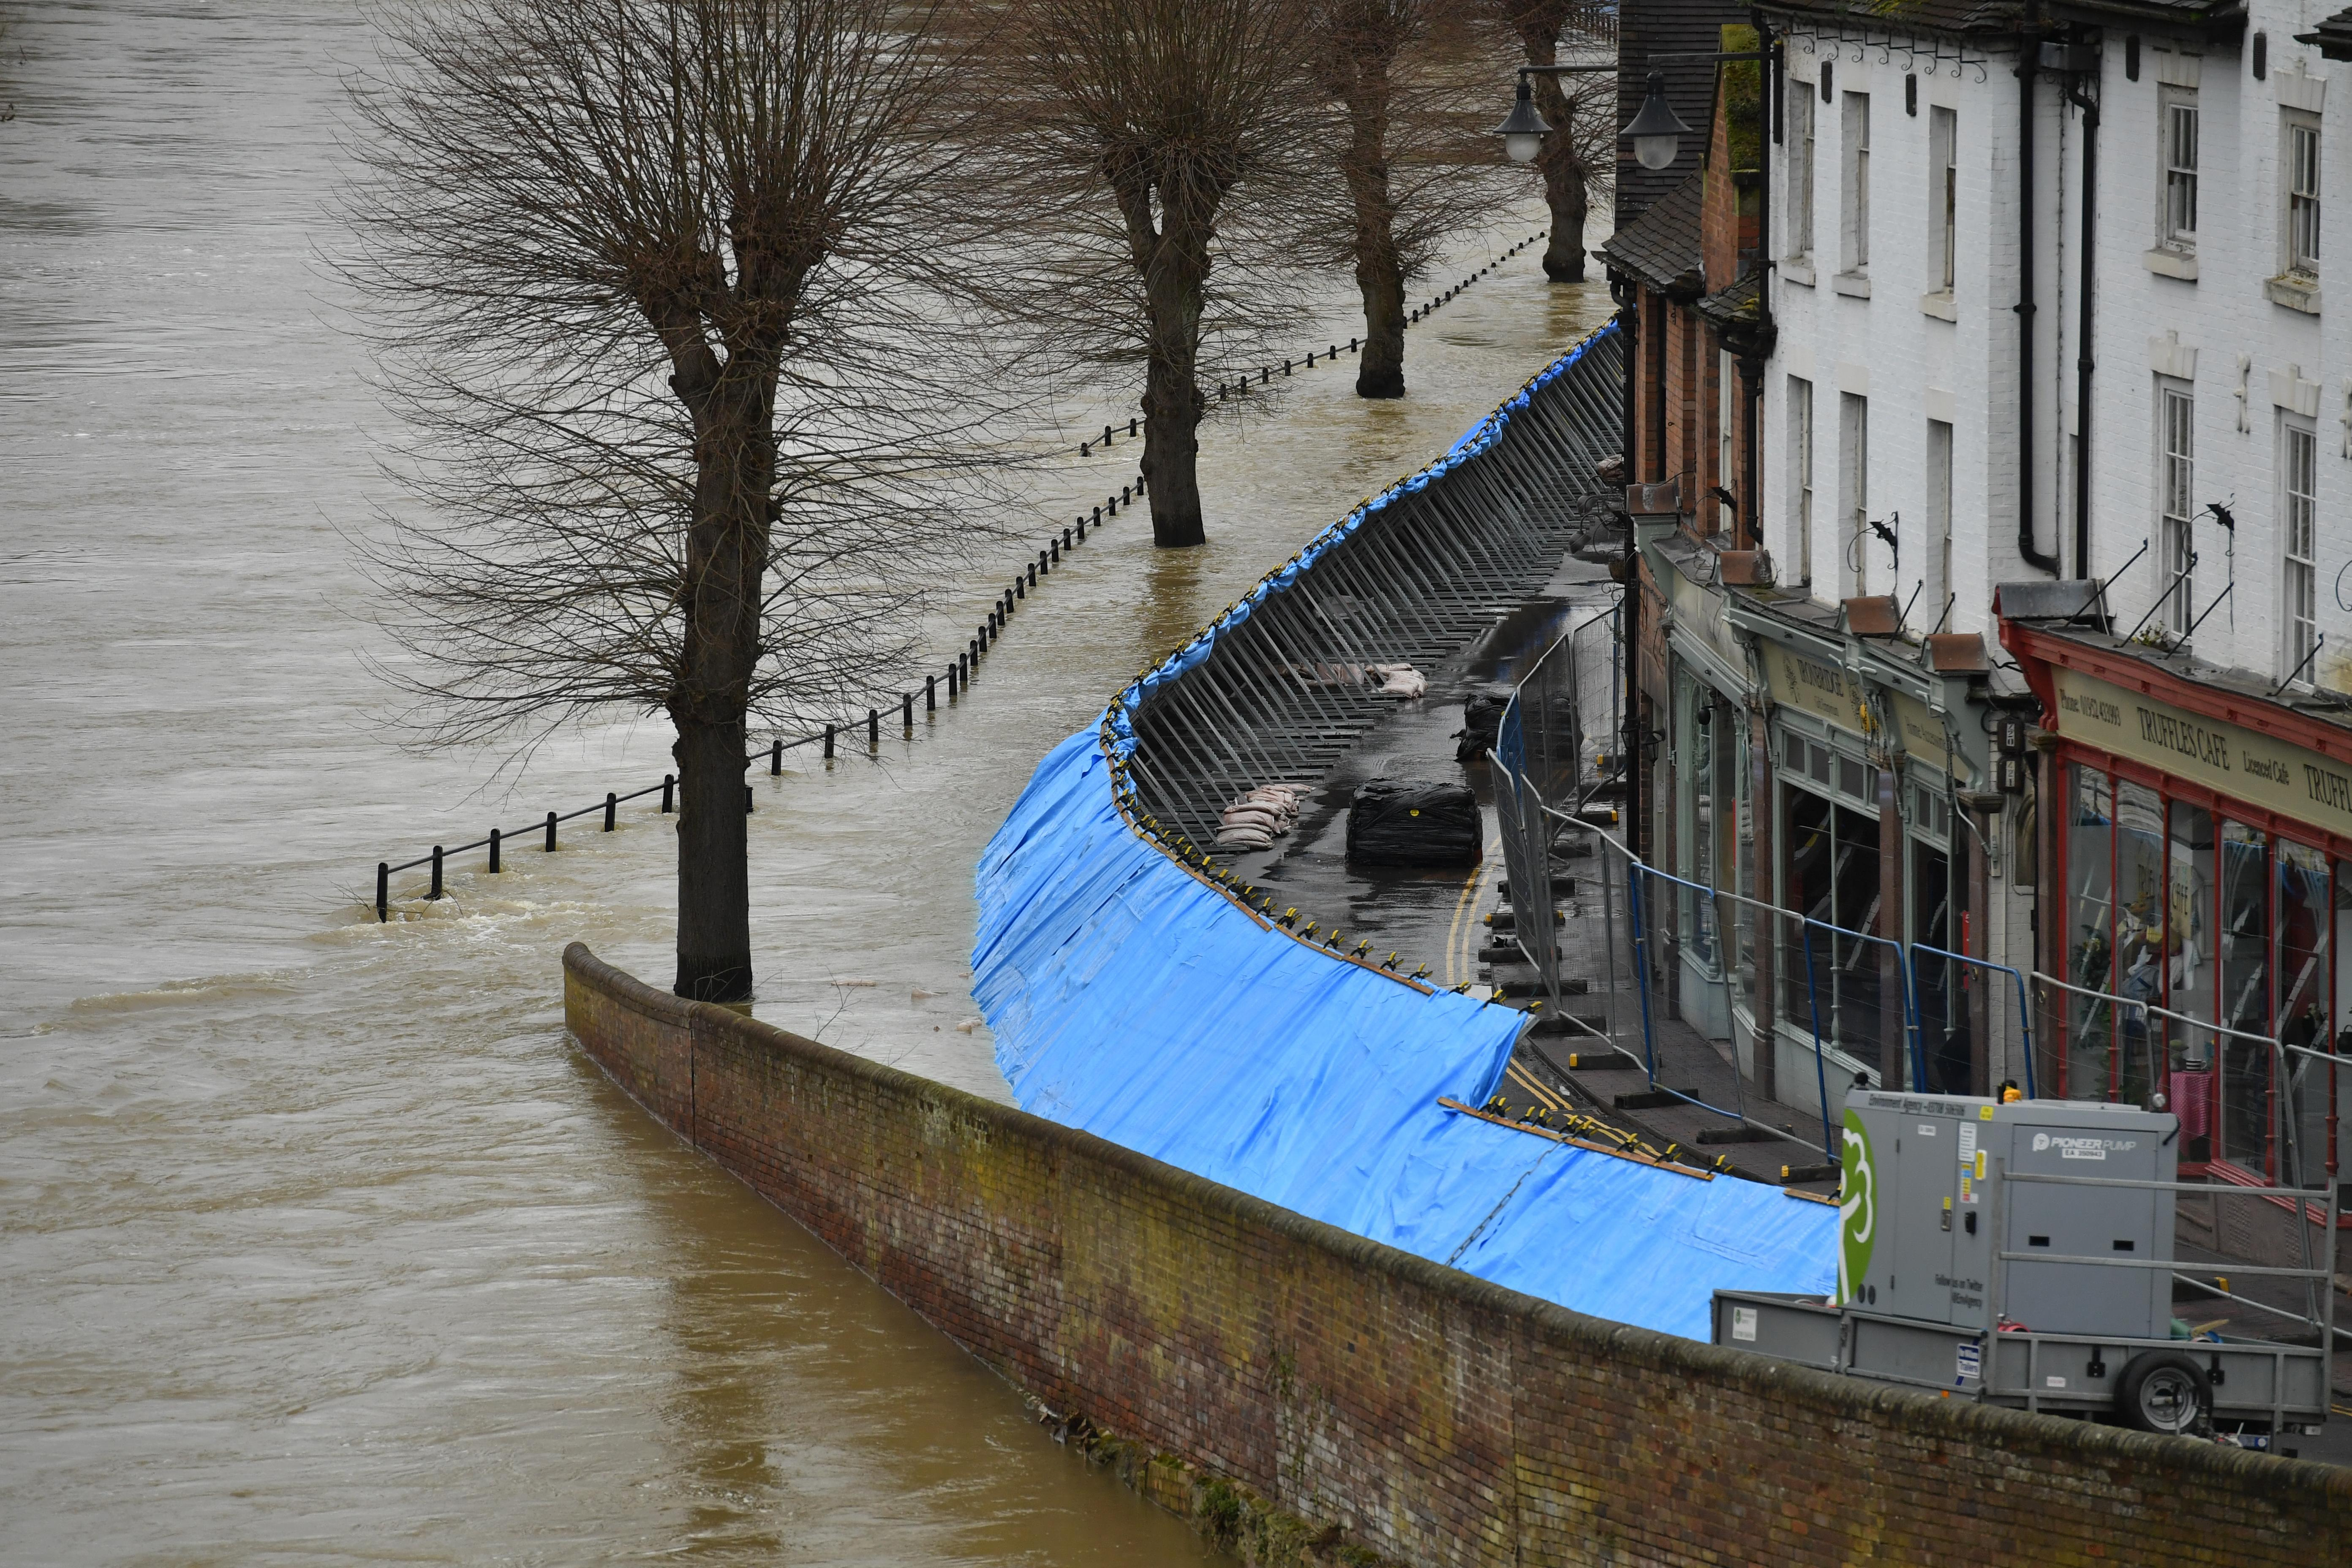 Temporary flood barriers hold back the river Severn in Ironbridge, Shropshire, in the aftermath of Storm Dennis. (Photo by Jacob King/PA Images via Getty Images)